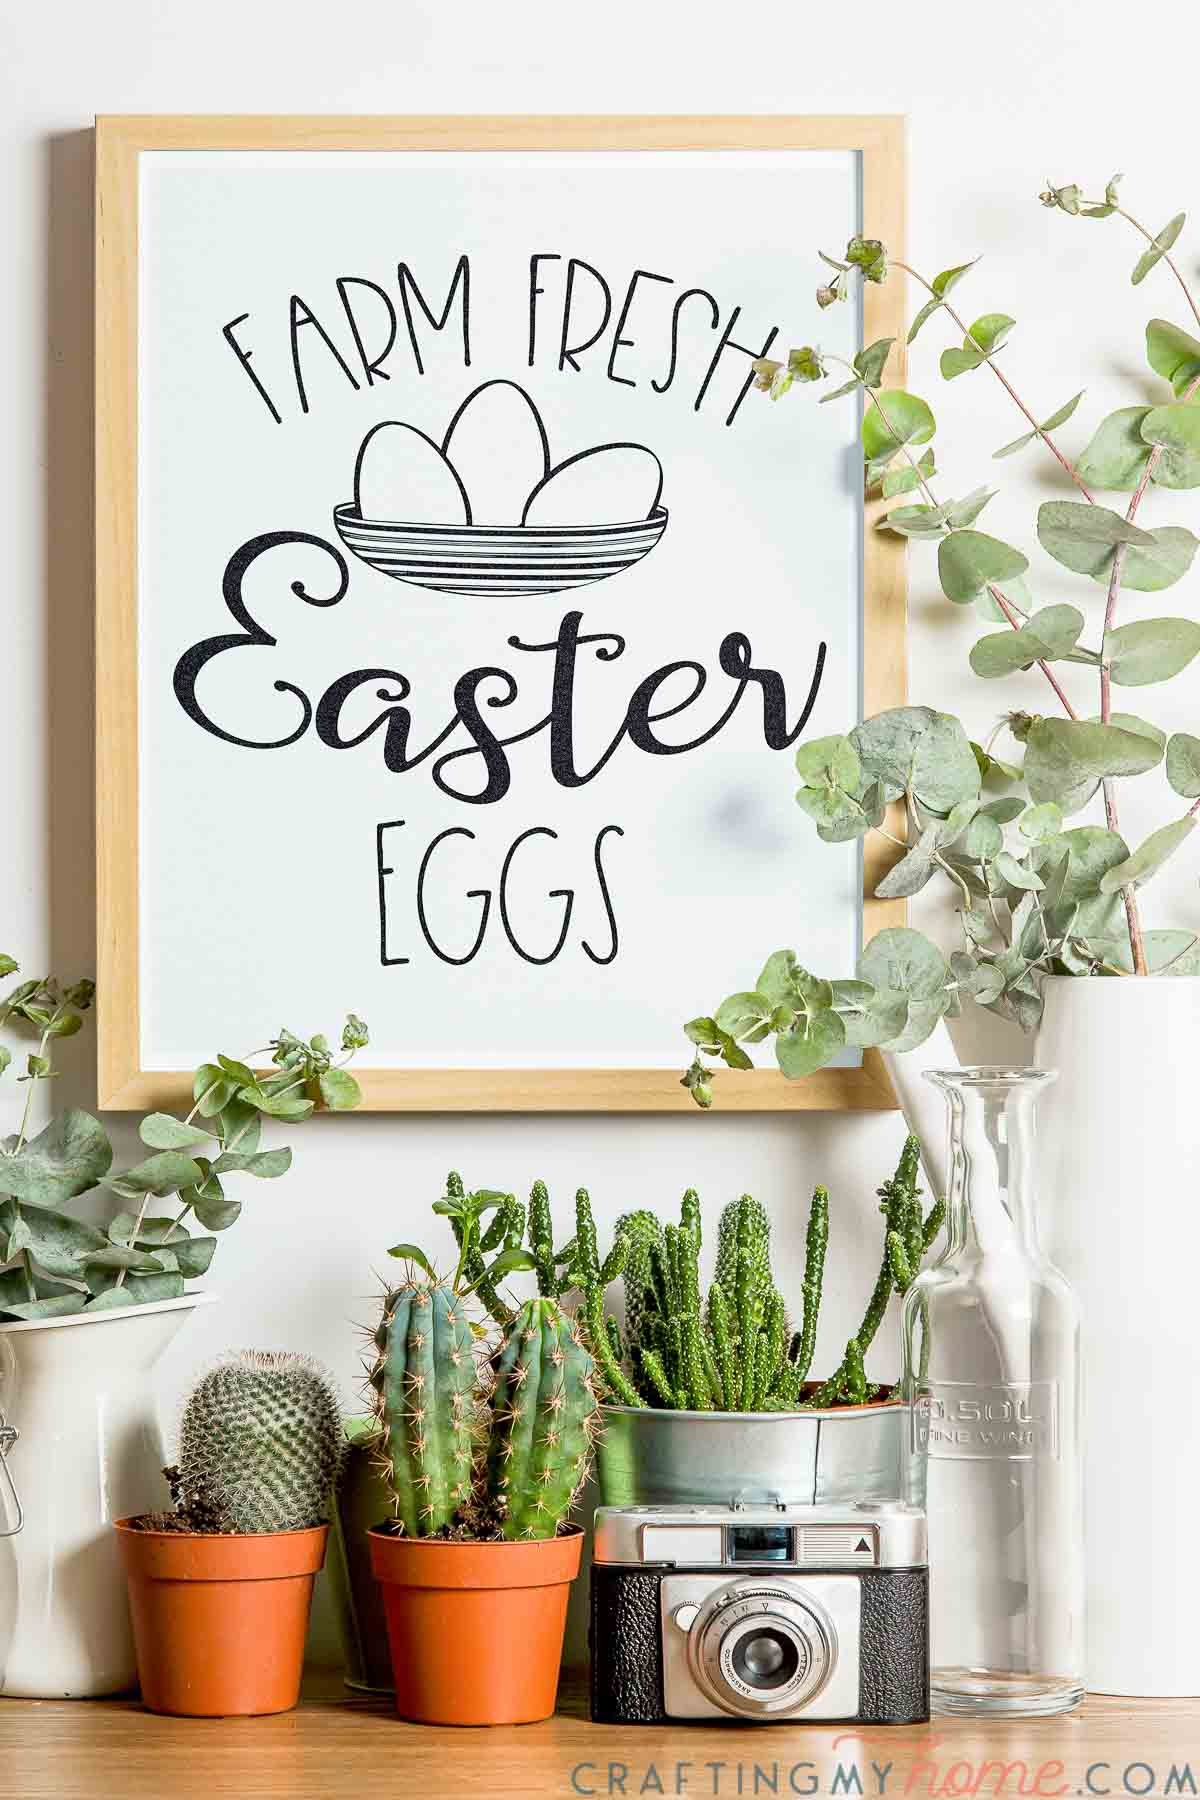 Console with plants on it and frame hanging on the wall above it with the beautiful Easter egg sign in it.